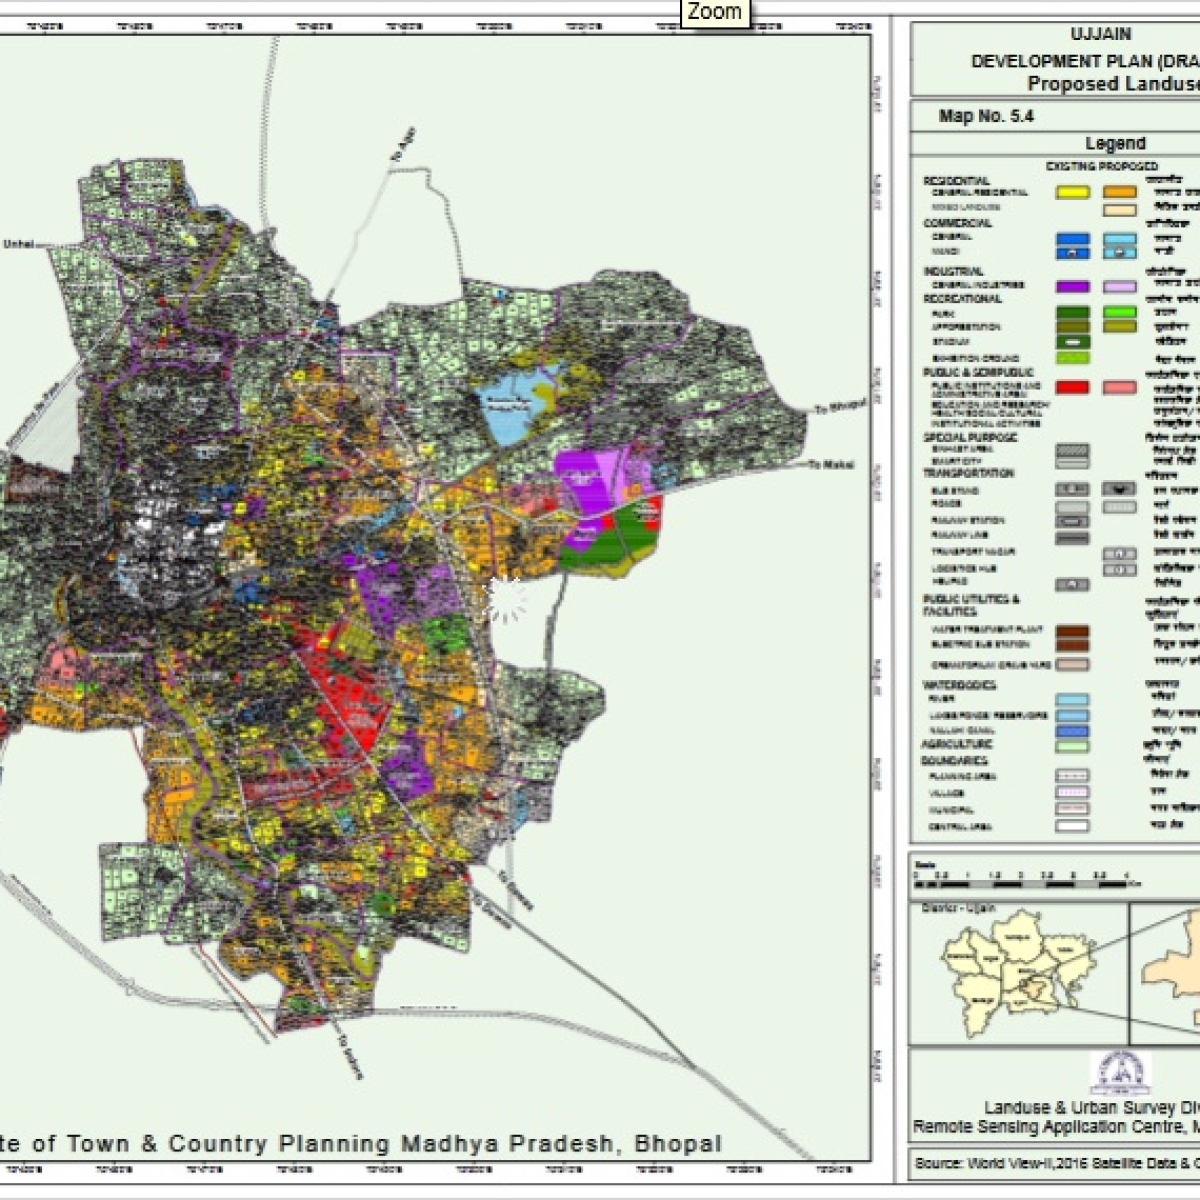 Ujjain: Master Plan conundrum; vested interests of leaders cast shadow over city's development